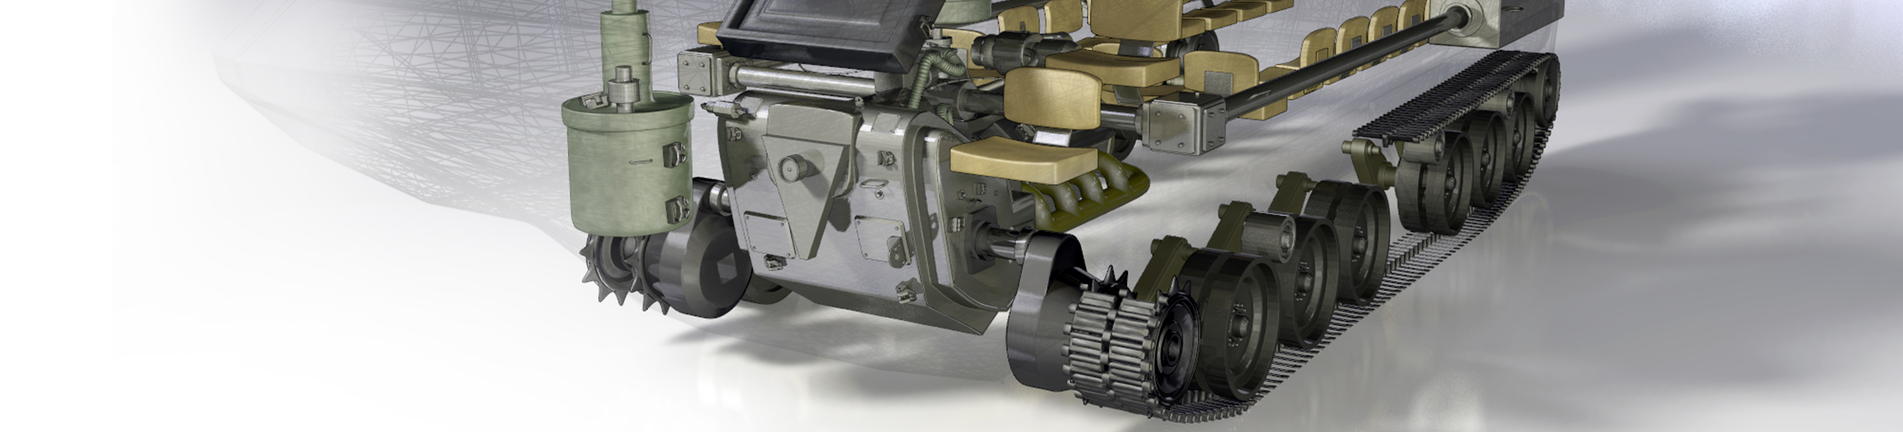 Driveline and Transmissions